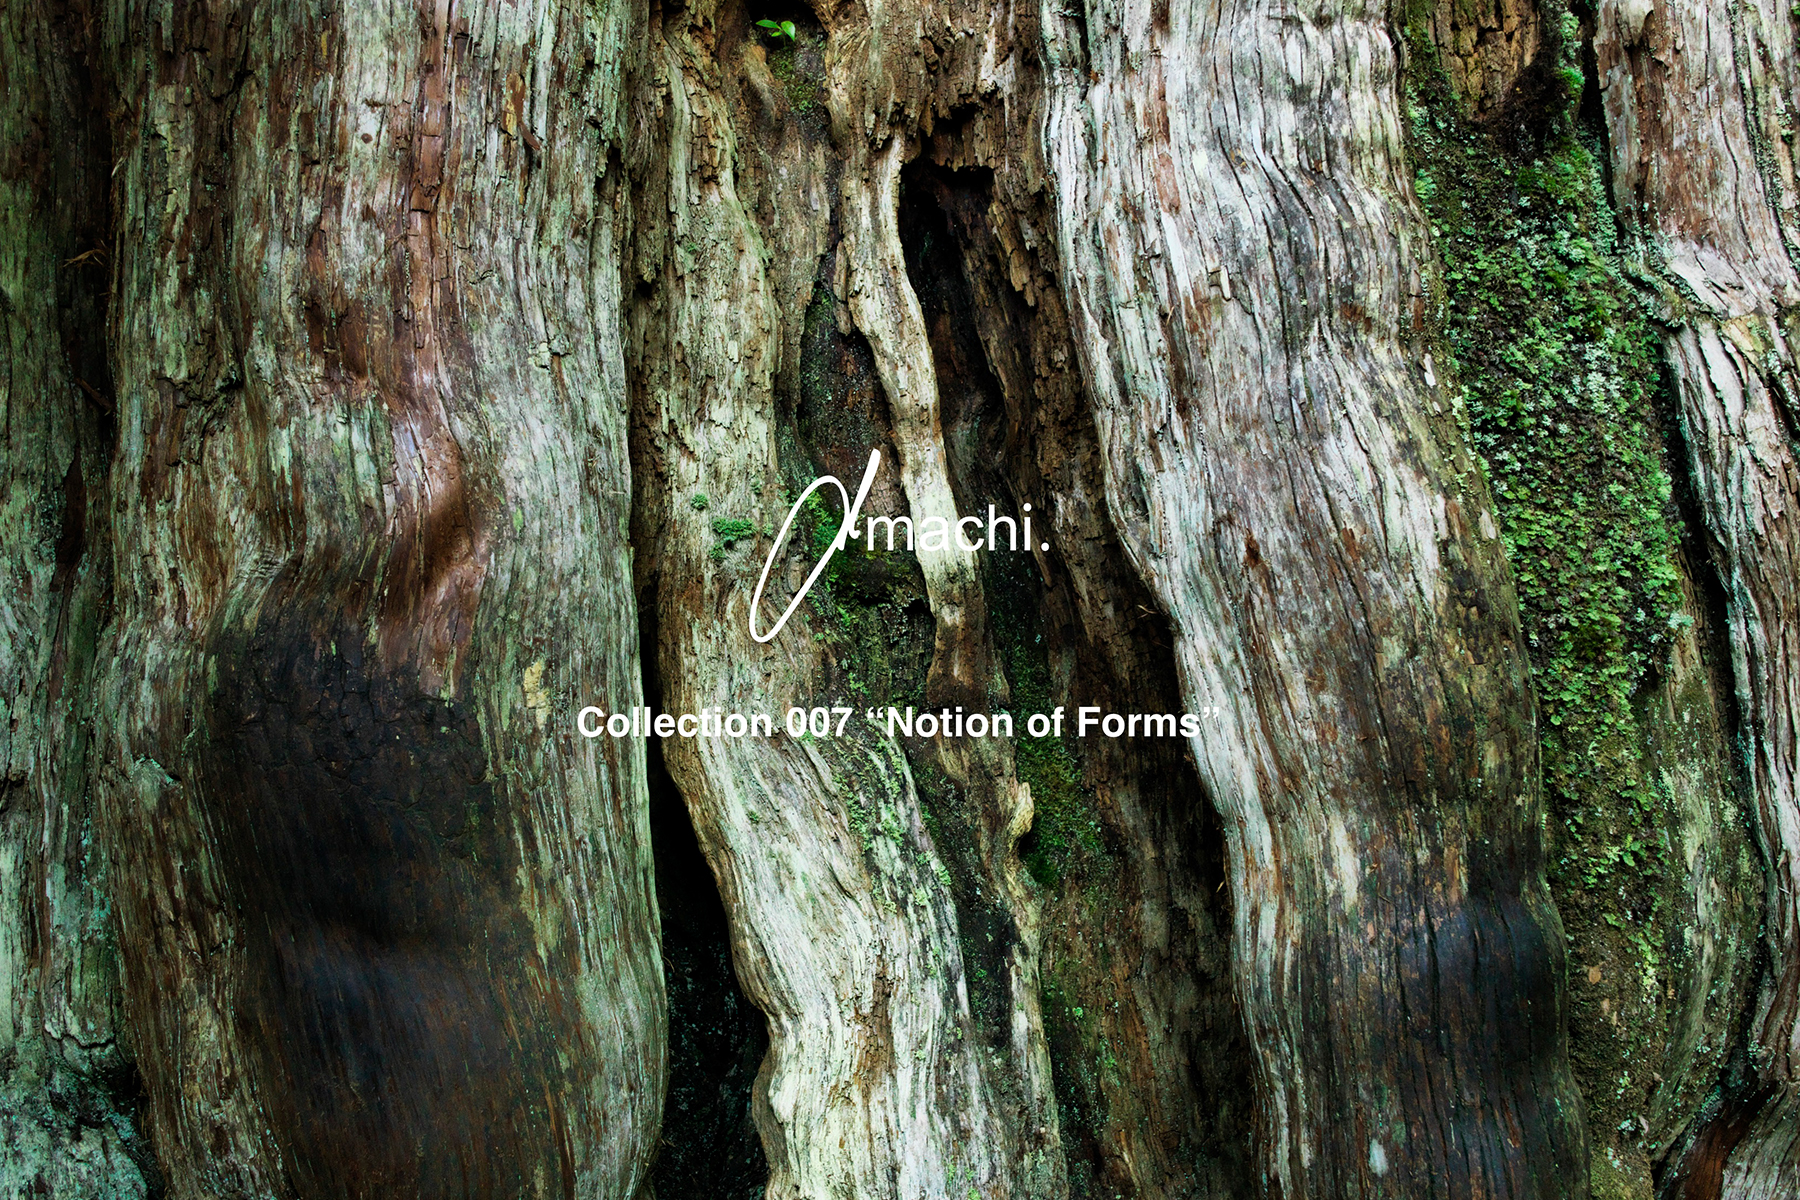 """amachi.